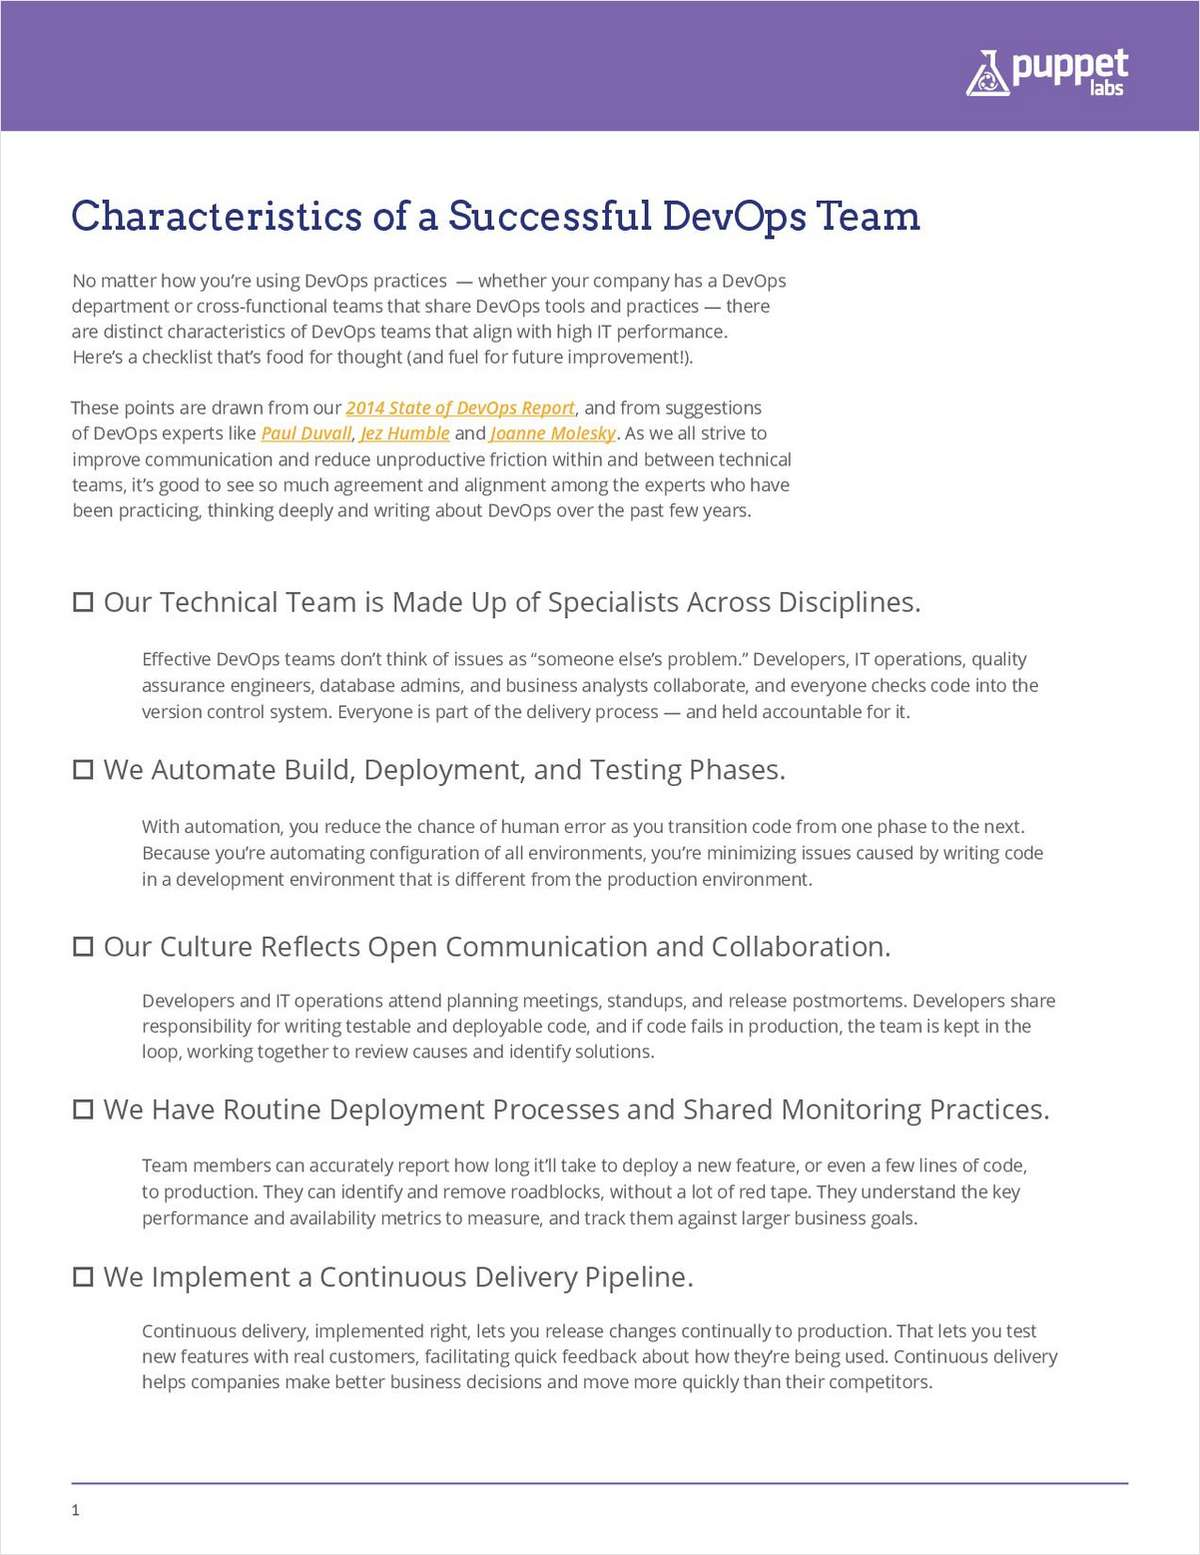 Characteristics of a Successful DevOps Team